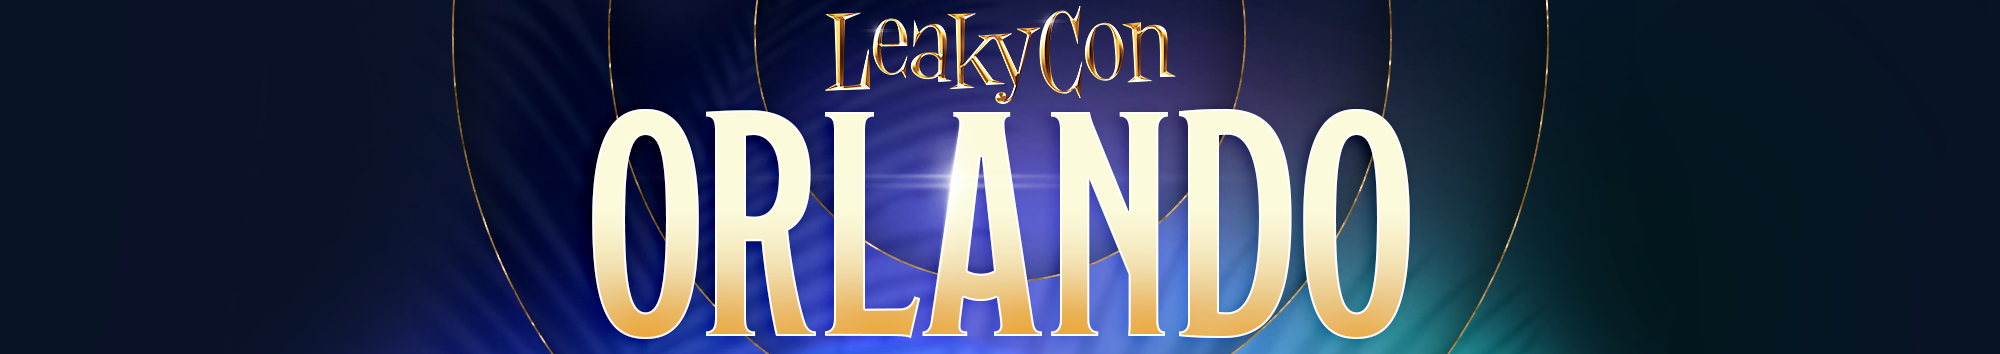 Tickets for LeakyCon 2022: Orlando in Orlando from ShowClix